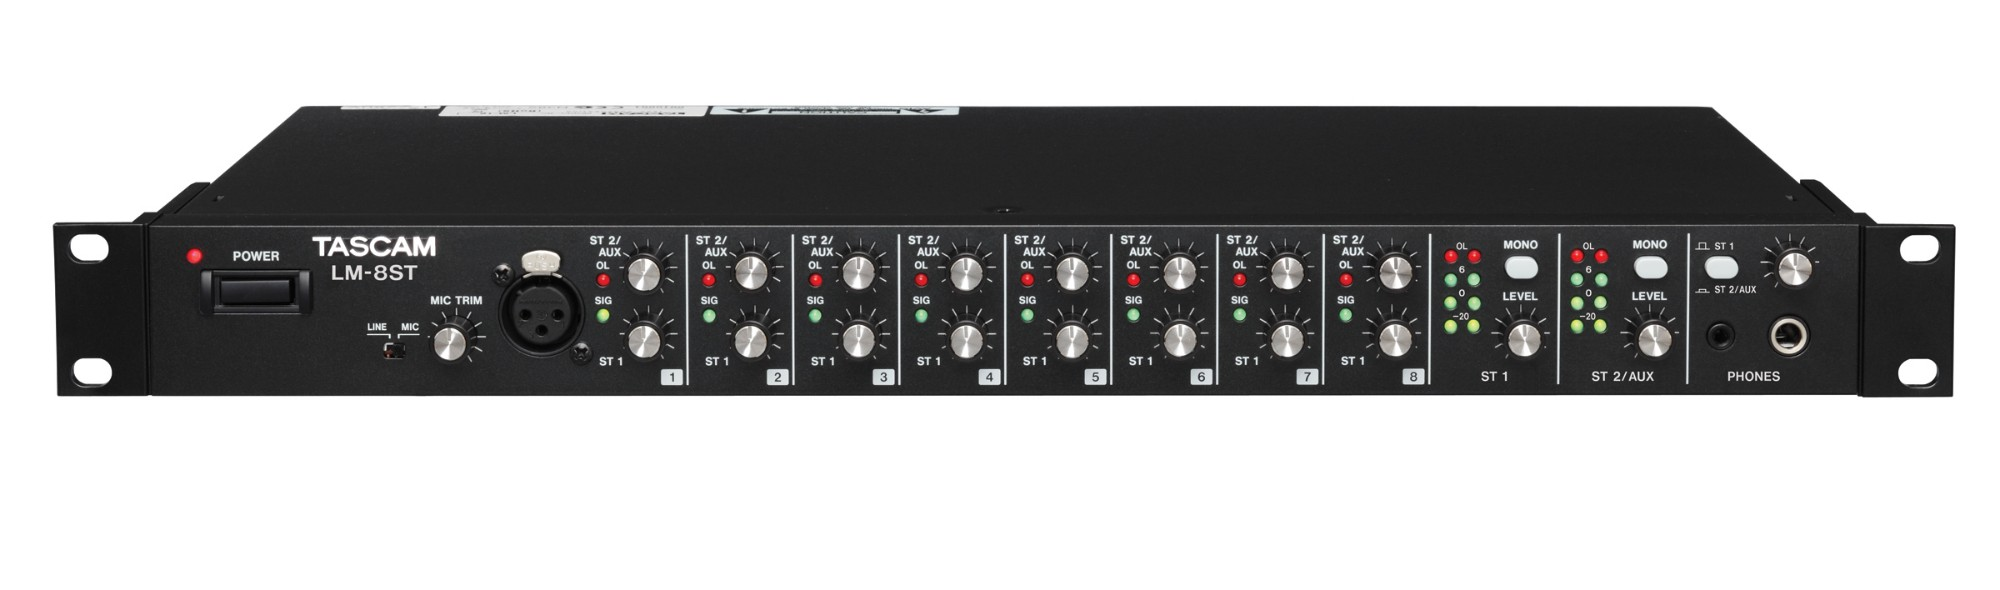 Tascam LM-8ST 8channels Black audio mixer